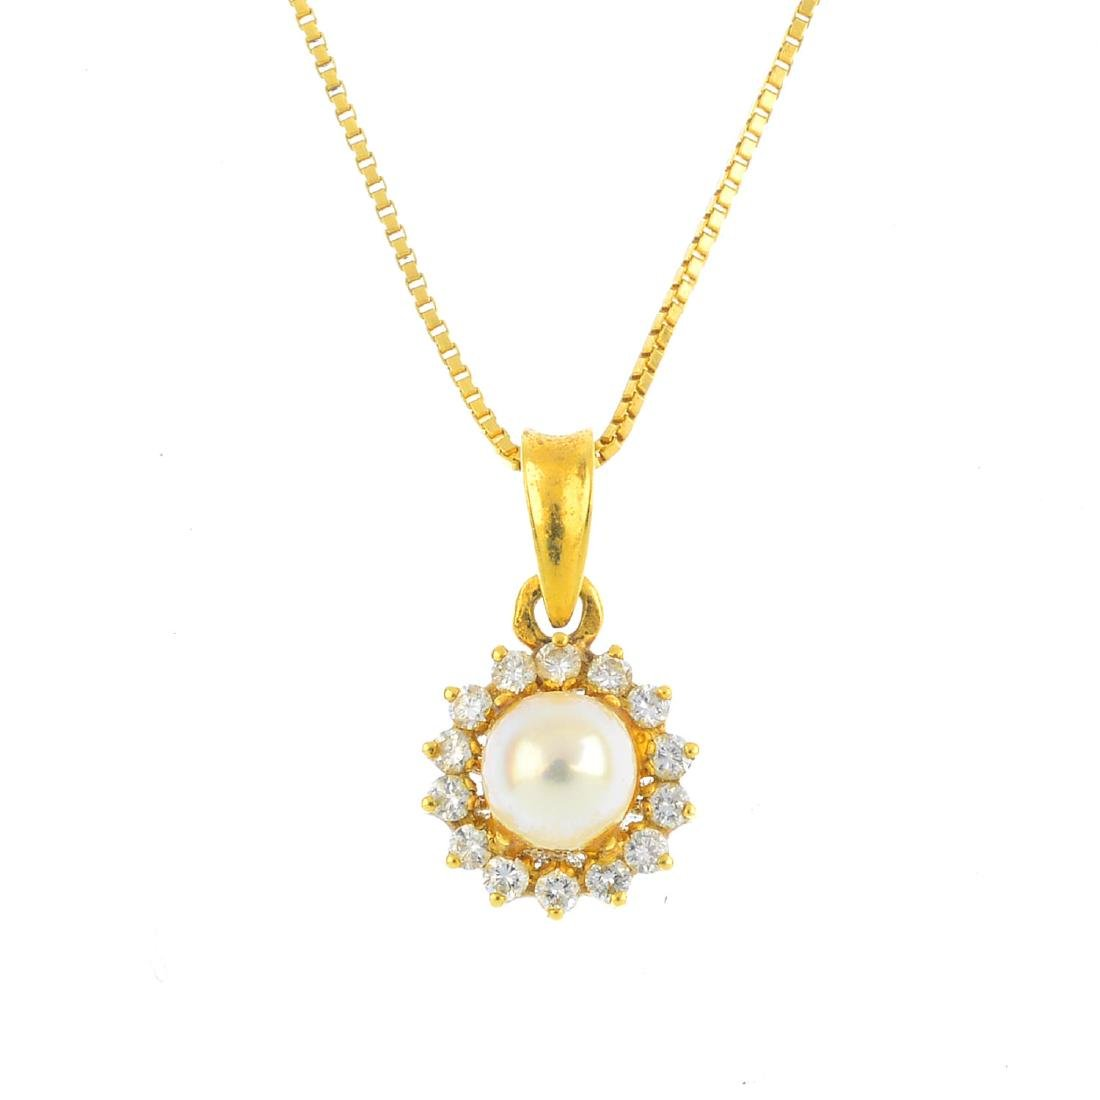 A cultured pearl and diamond pendant. The cultured